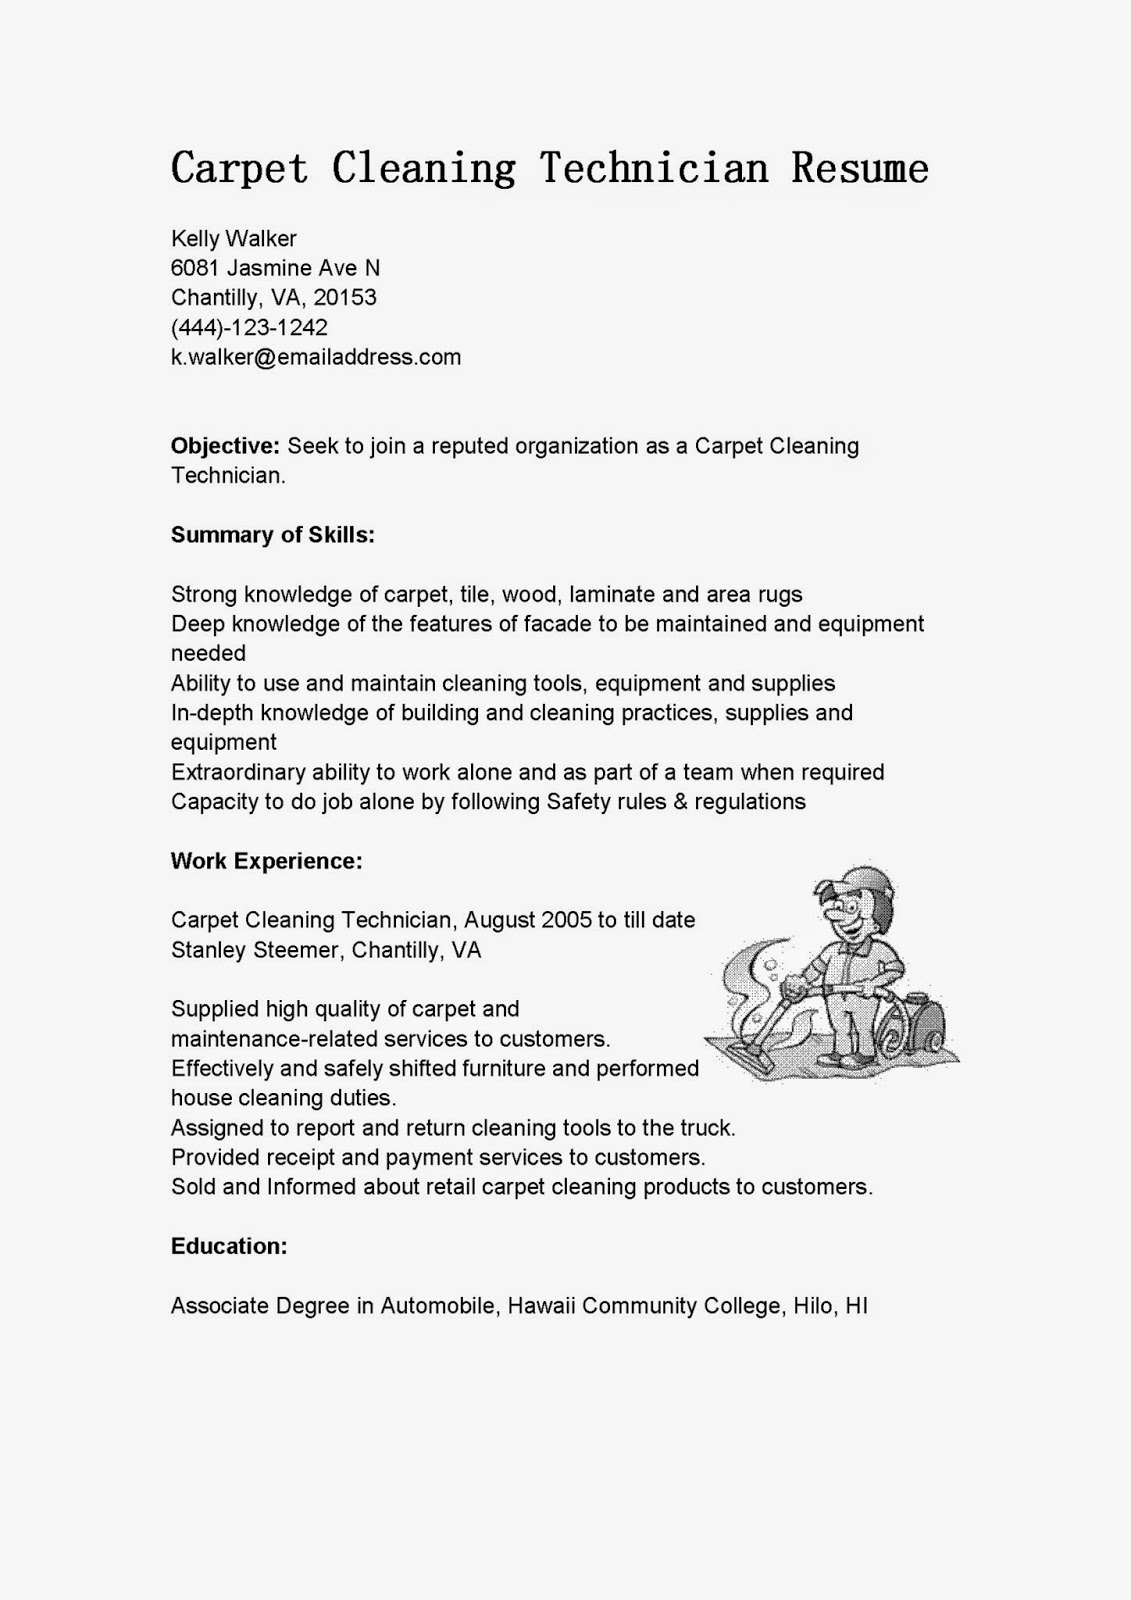 office cleaner resume objective october cleaning for carpet technician vocal example Resume Cleaning Objective For Resume